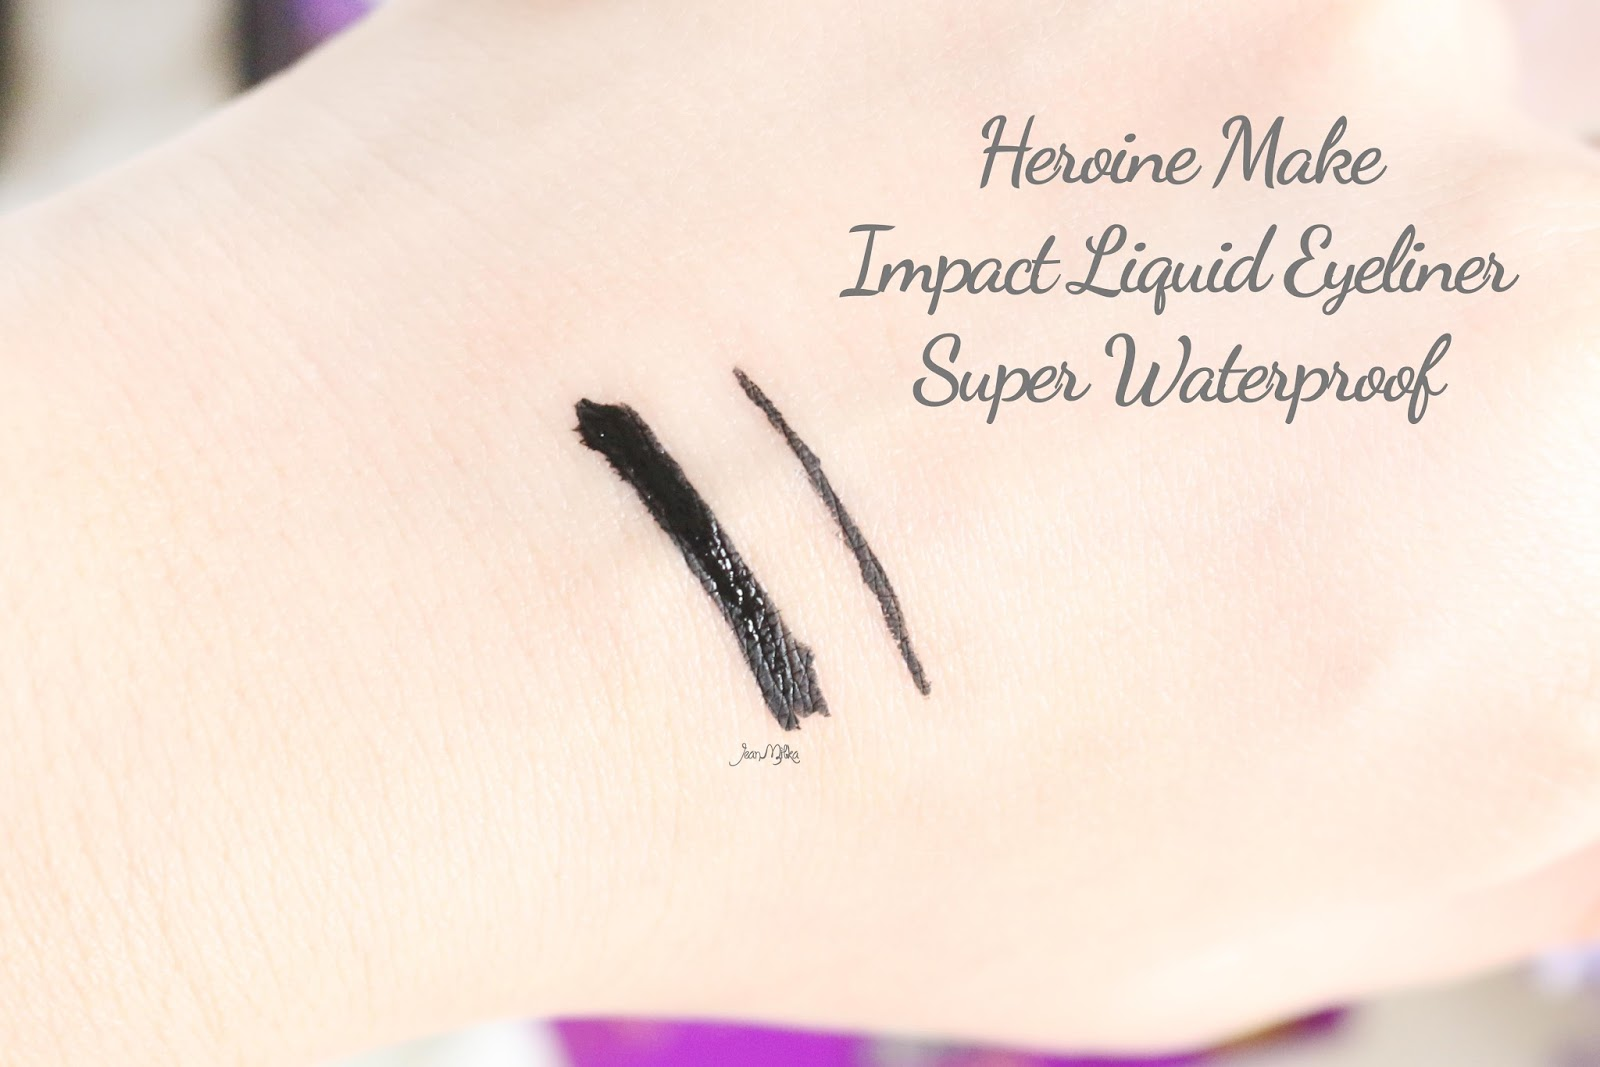 makeup, drugstore, makeup murah, review, beauty, beauty blog indonesia, makeup pemula, makeup untuk pemula, makeup murah indo, eyeliner, heroine make